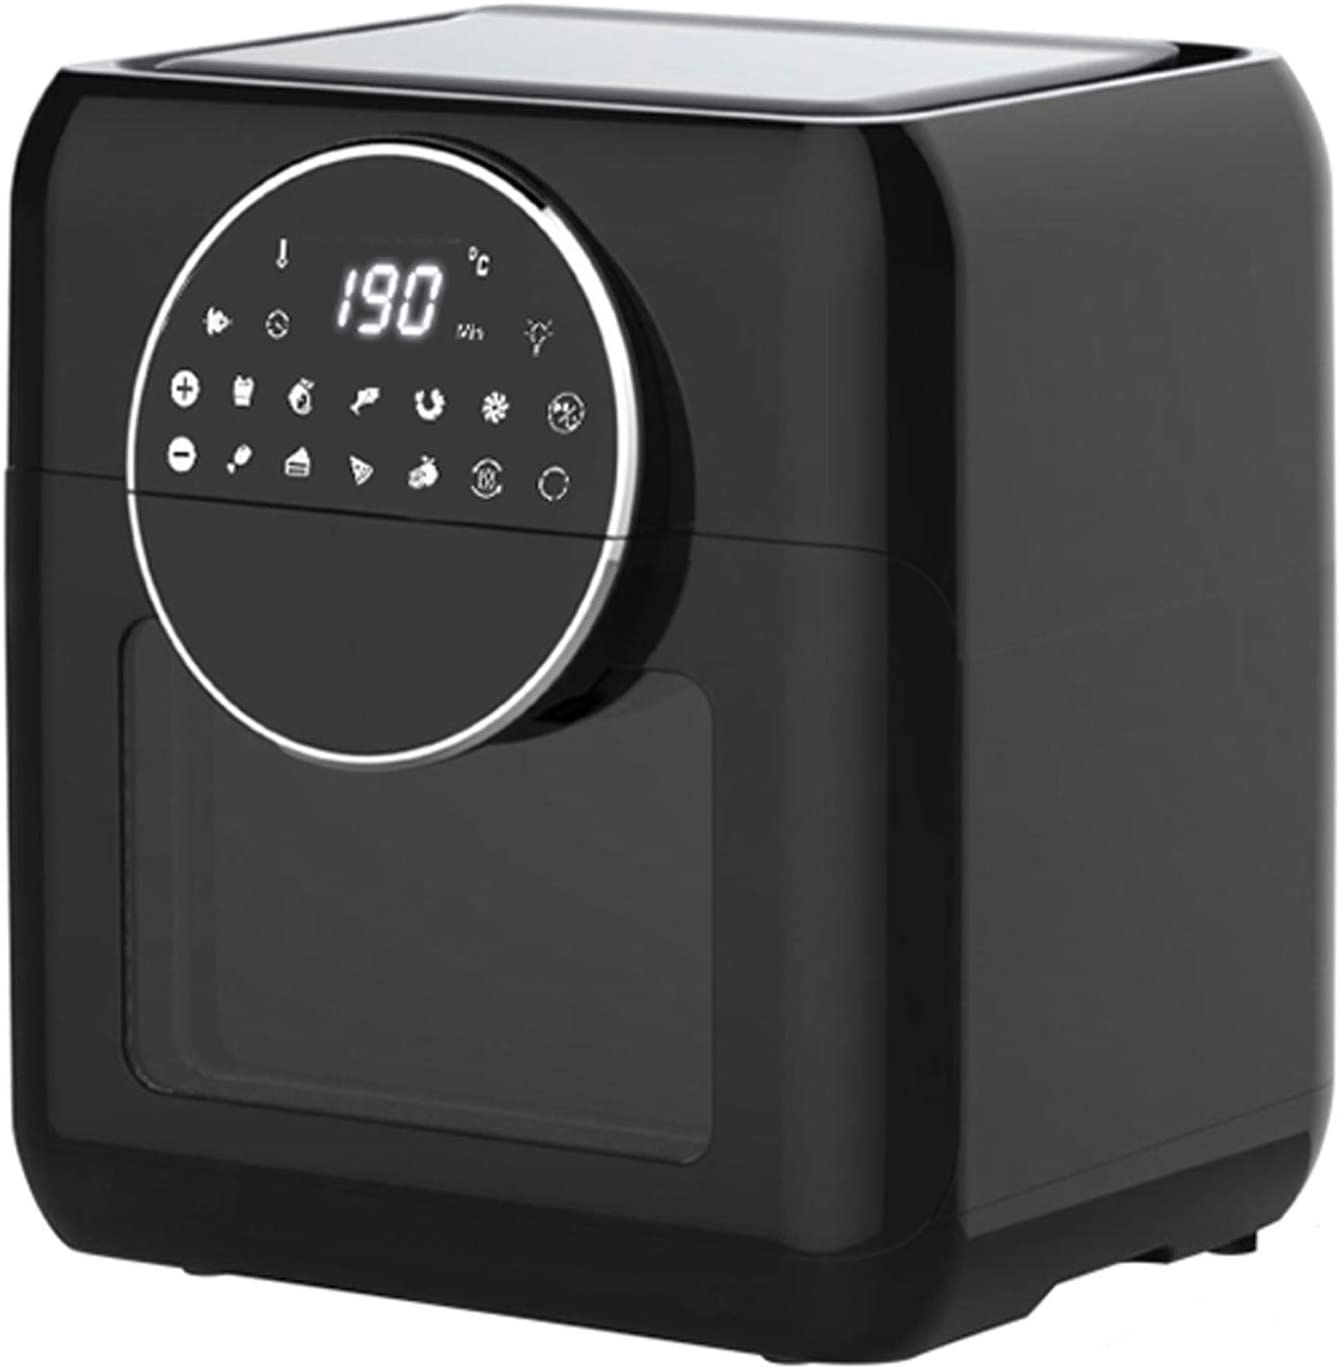 zaizai 10L Electric Air Fryer Rotisserie Oven, Digital Multi Air Cooker,Smart Operation Panel,Intelligent Rotary Heating,1500W, 9 Cooking Presets